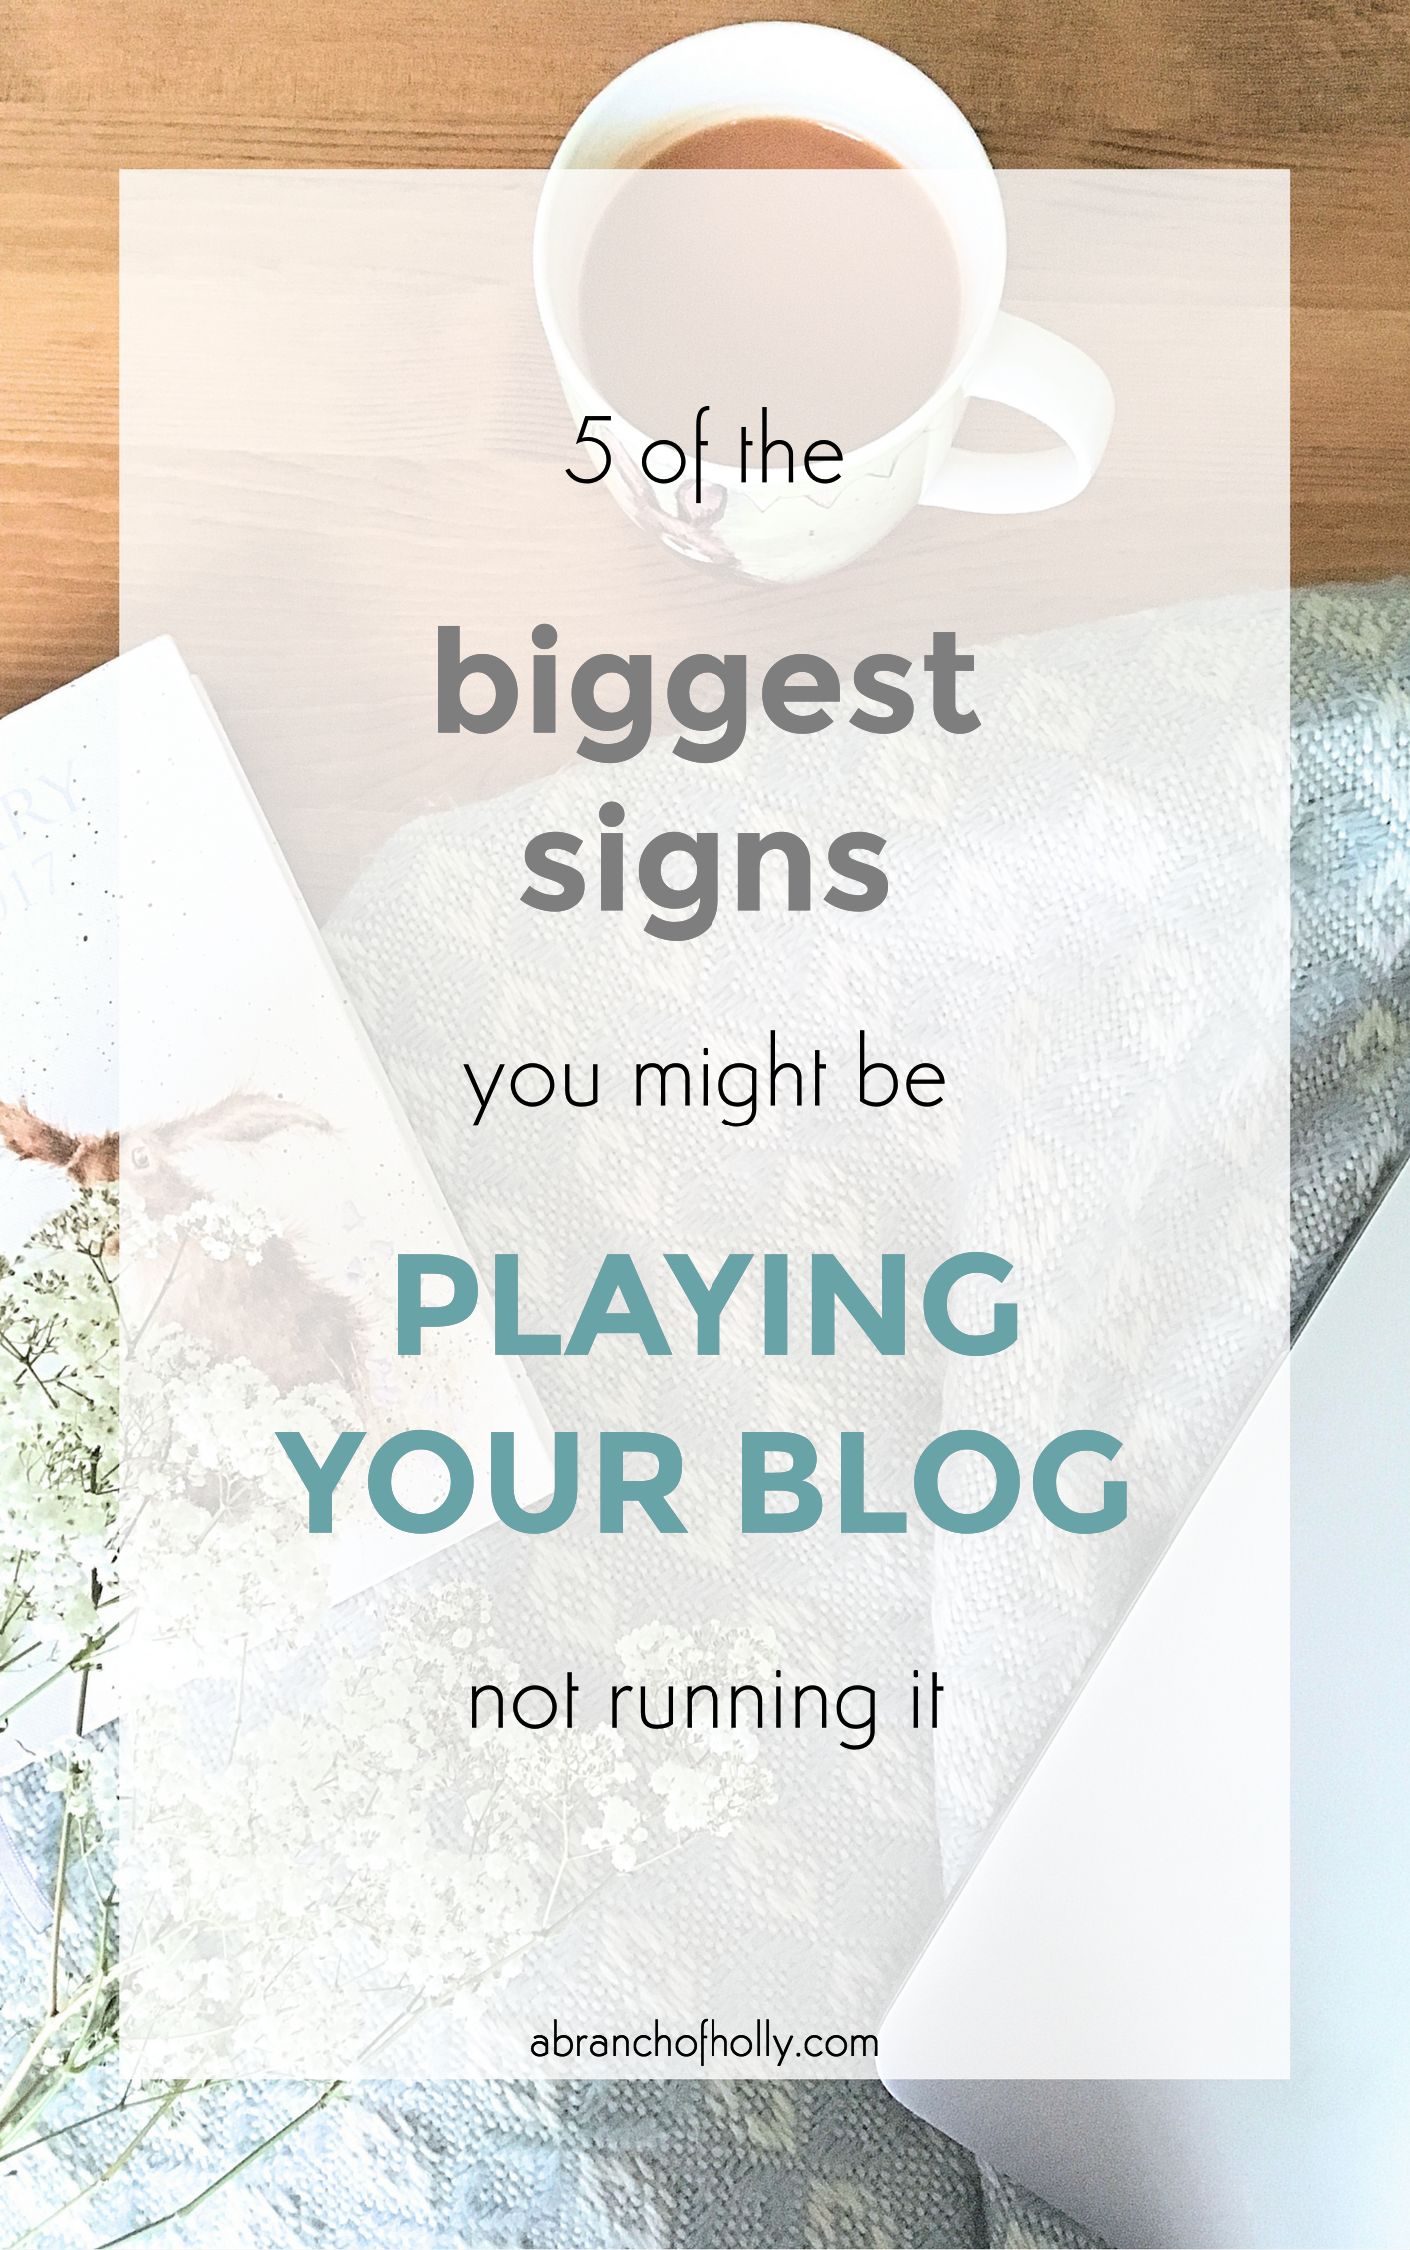 signs you might be playing your blog not running it